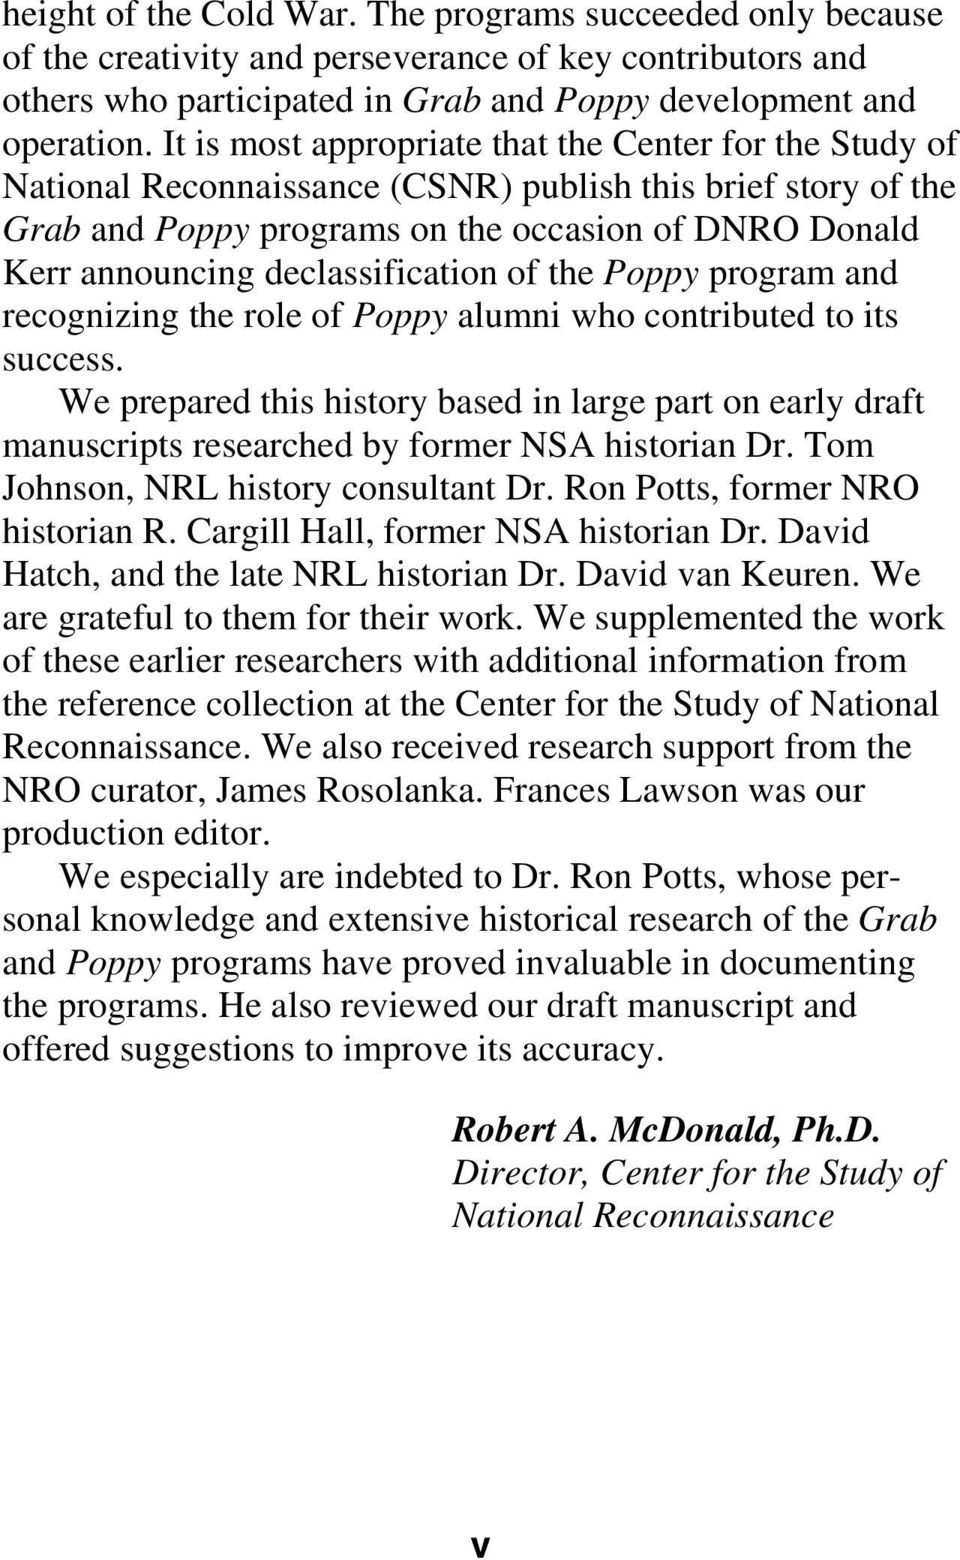 declassification of the Poppy program and recognizing the role of Poppy alumni who contributed to its success.